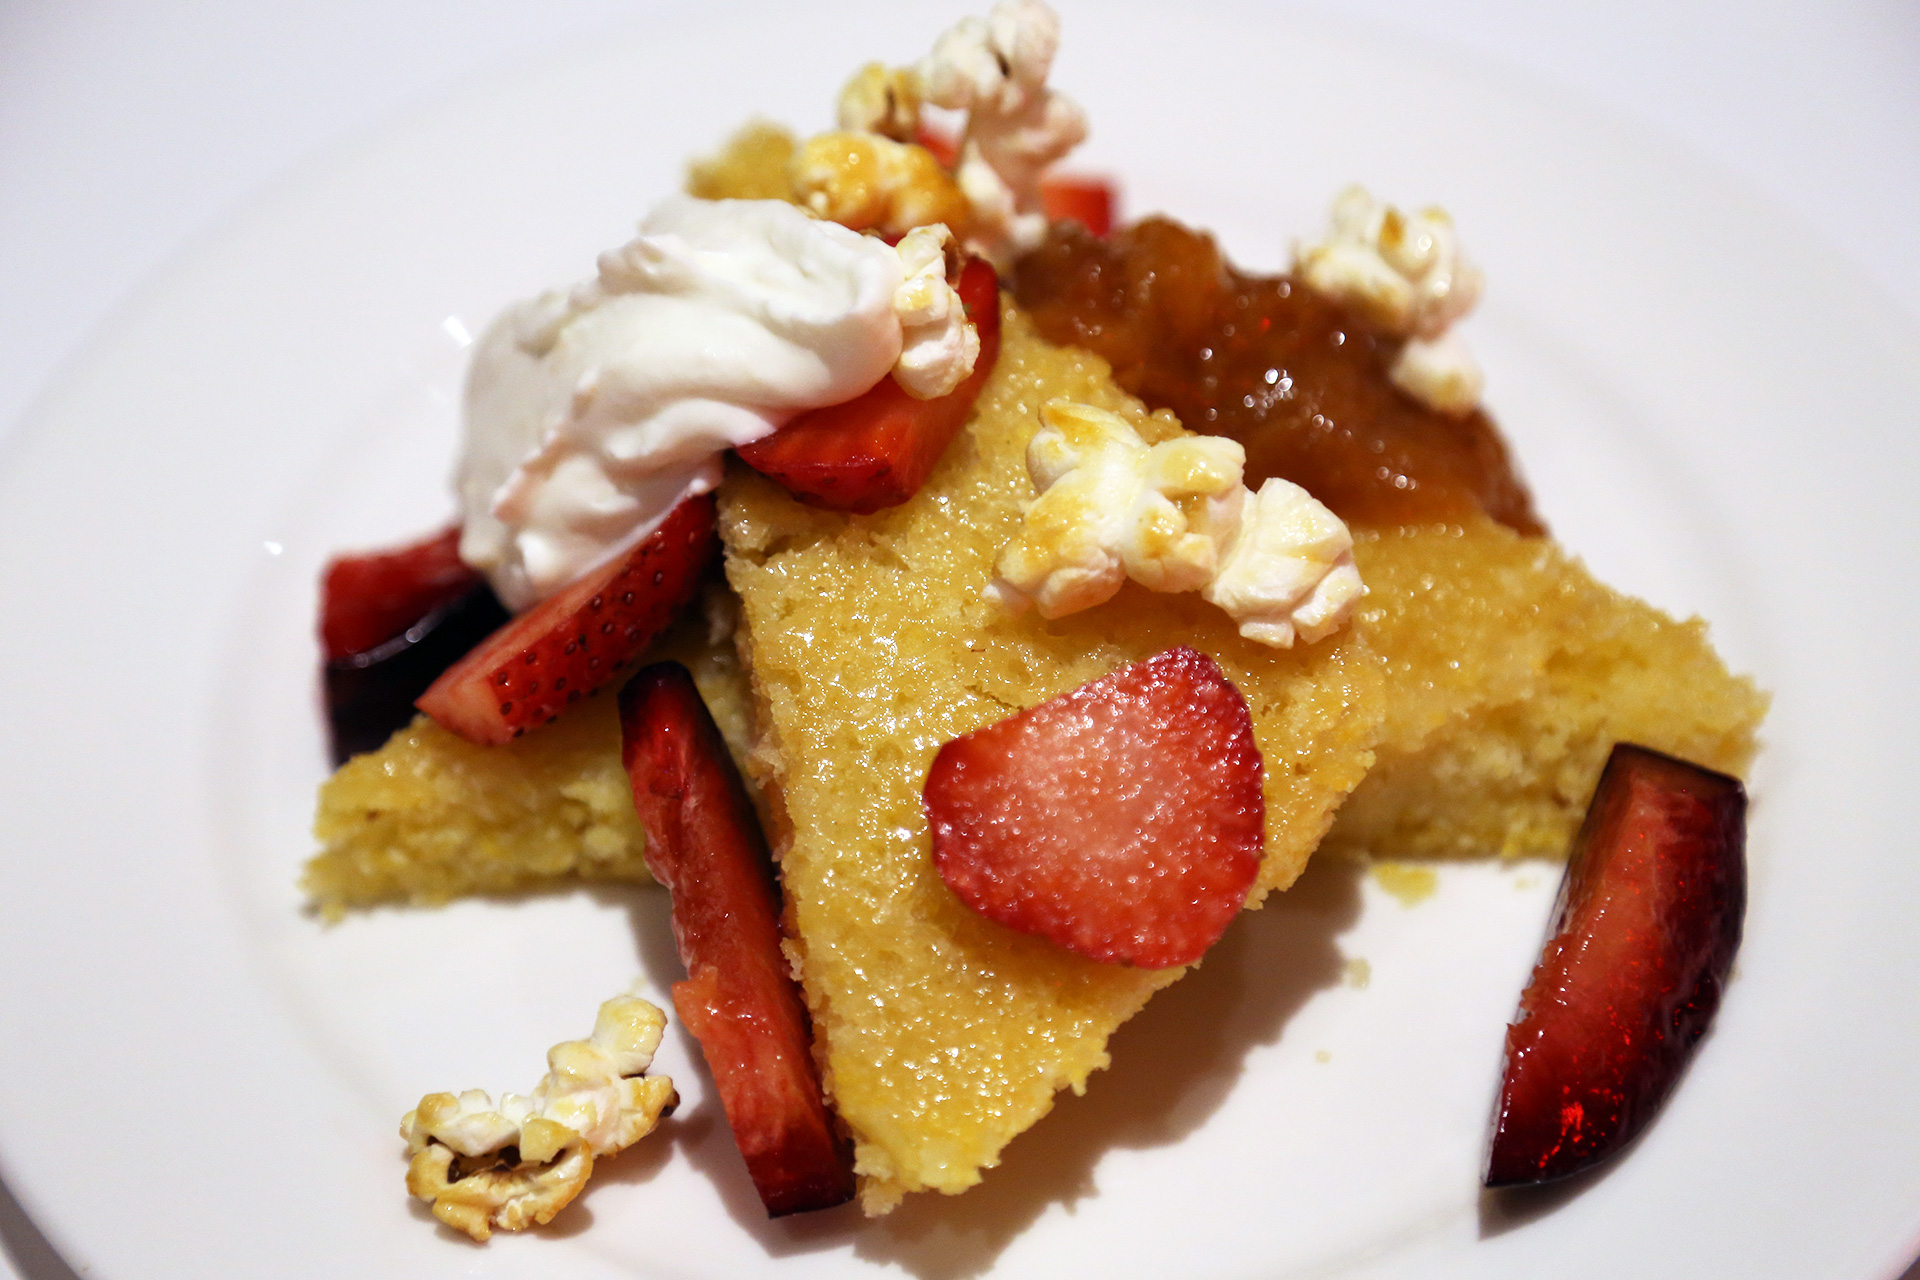 Polenta cake topped with ricotta cream, summer fruit, and a surprising and wonderful garnish of kettle corn.